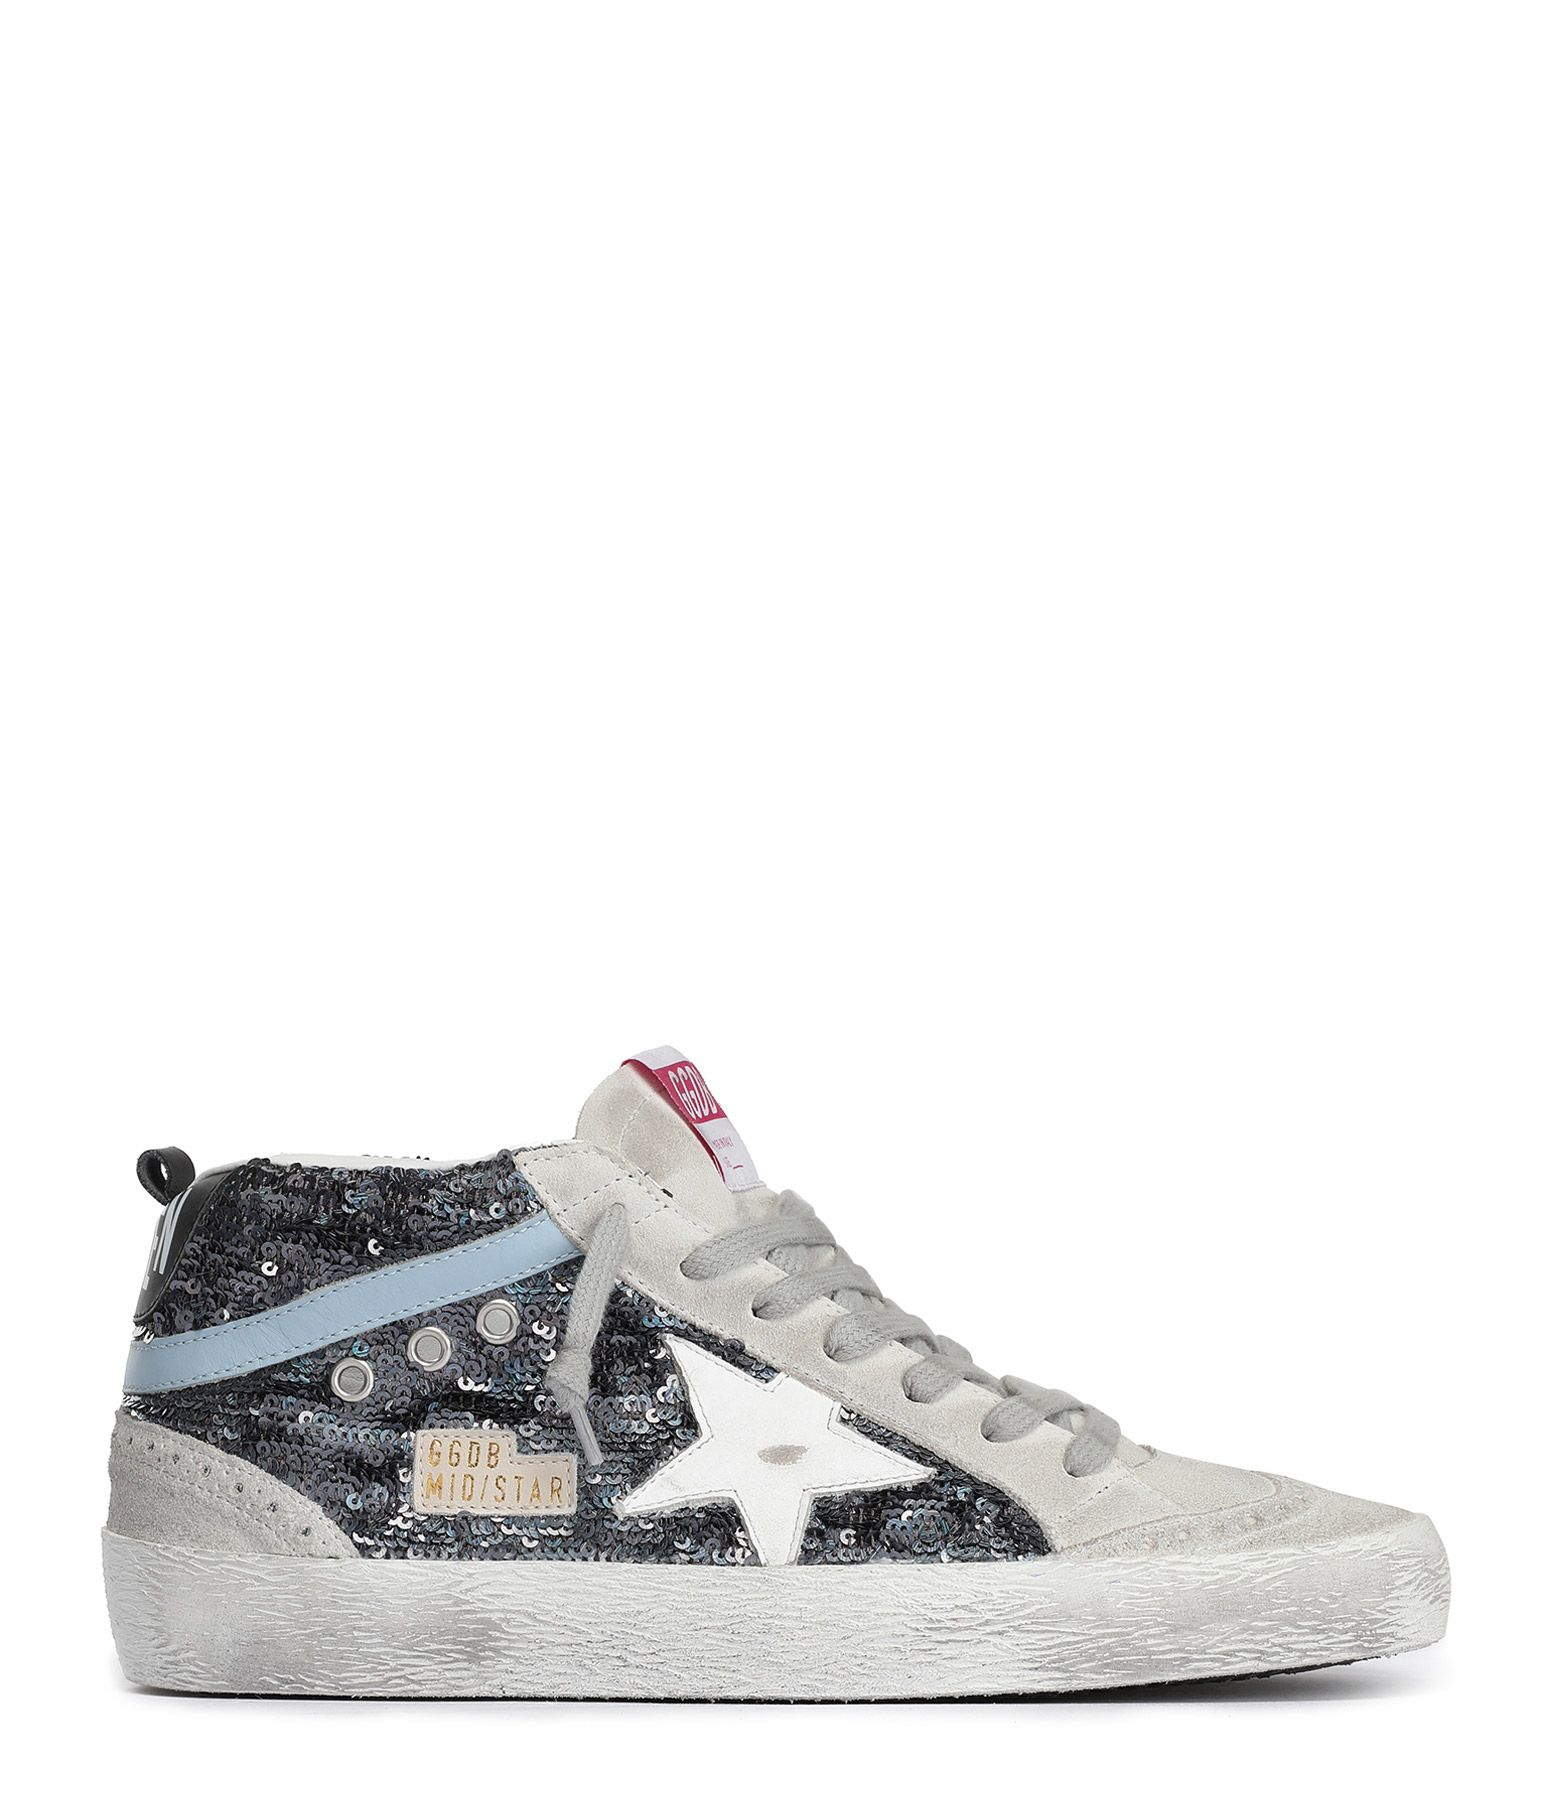 Baskets Mid Star Paillettes Cuir Multicolore en 2020 | Cuir